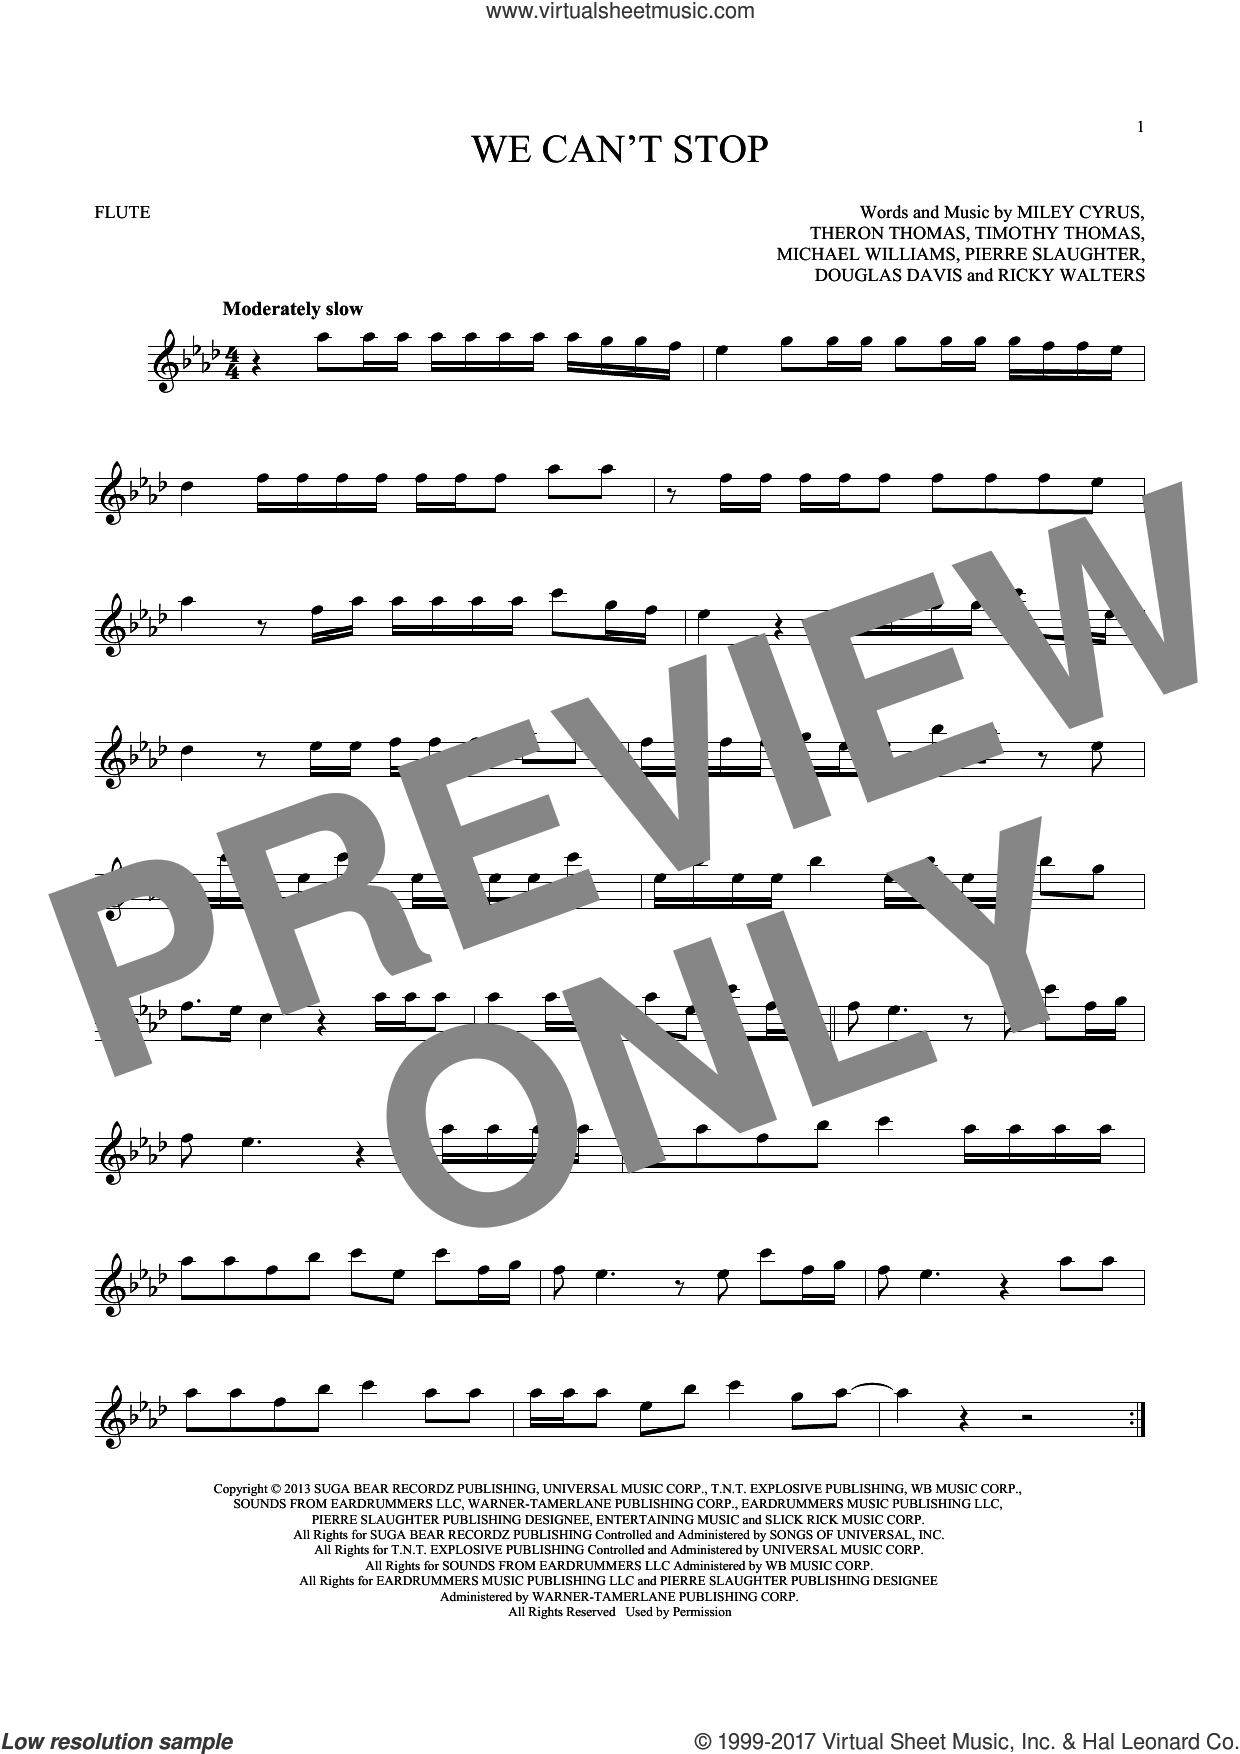 We Can't Stop sheet music for flute solo by Timmy Thomas, Michael Williams, Miley Cyrus, Pierre Slaughter and Ricky Walters. Score Image Preview.